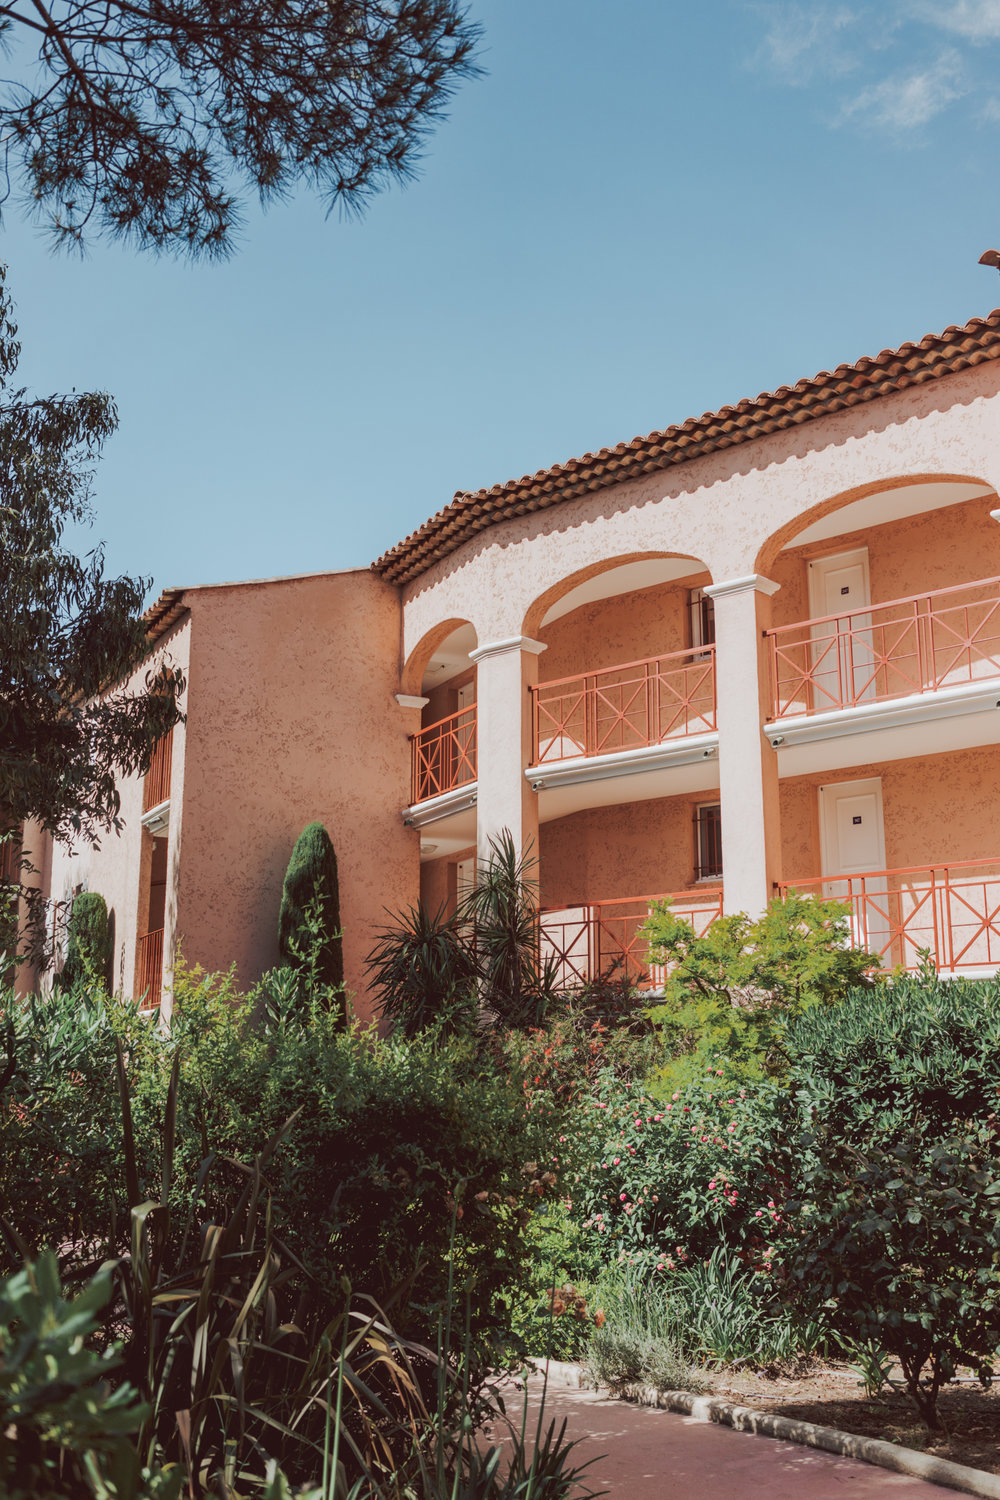 Pierre Vacance Giens Things to do in Hyeres South of France - French Rivera #France #Provence #FrenchRivera #CotedAzur Where to stay in Hyeres